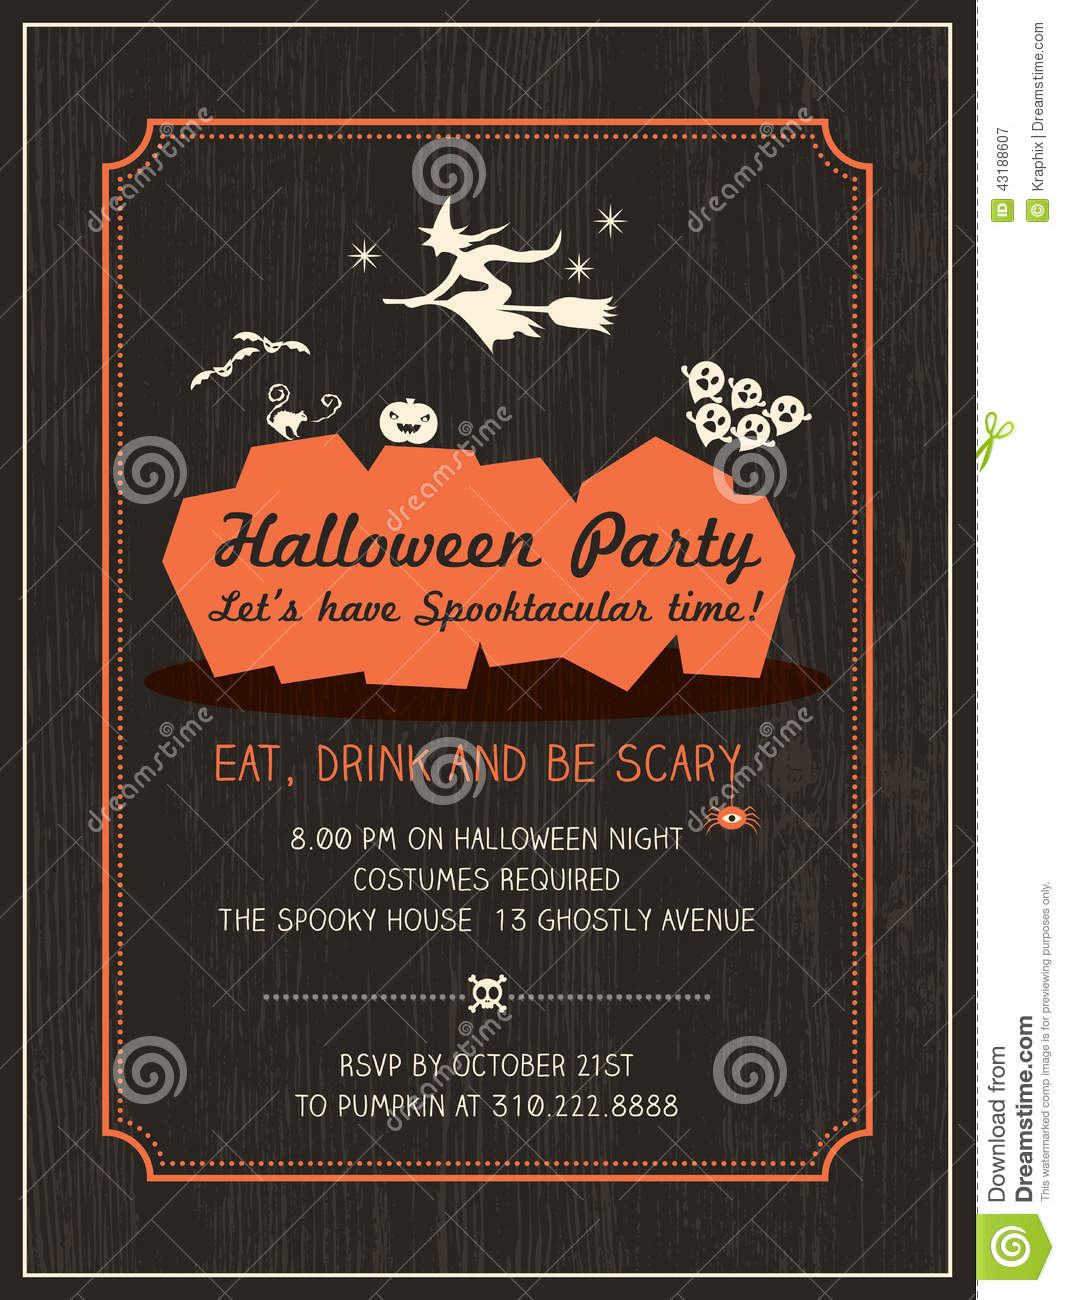 Halloween Party Invitation Template Stock Vector - Image: 43188607